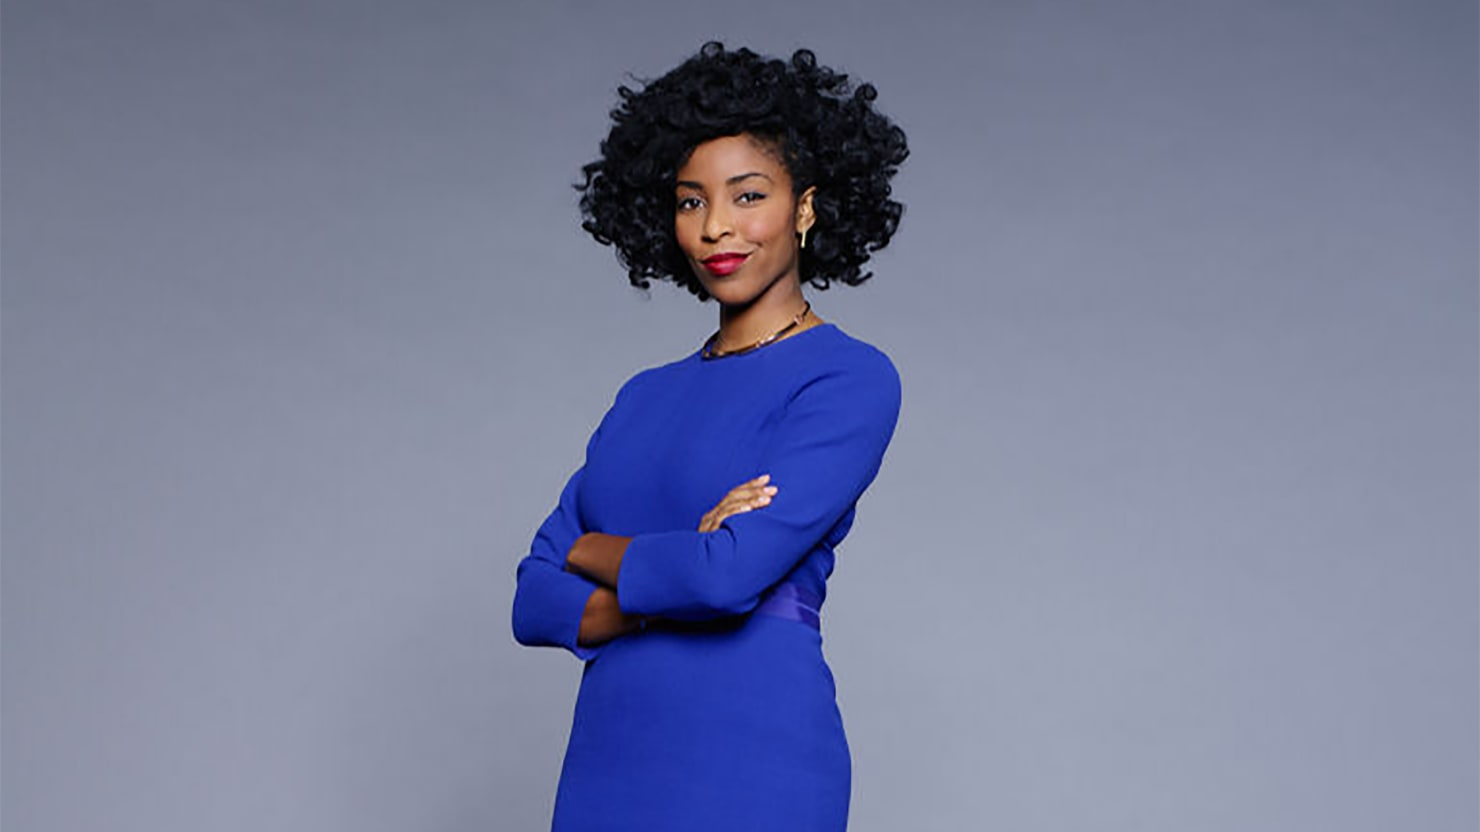 The Daily Show's Jessica Williams Shuts Down Beyoncé's Super Bowl Haters